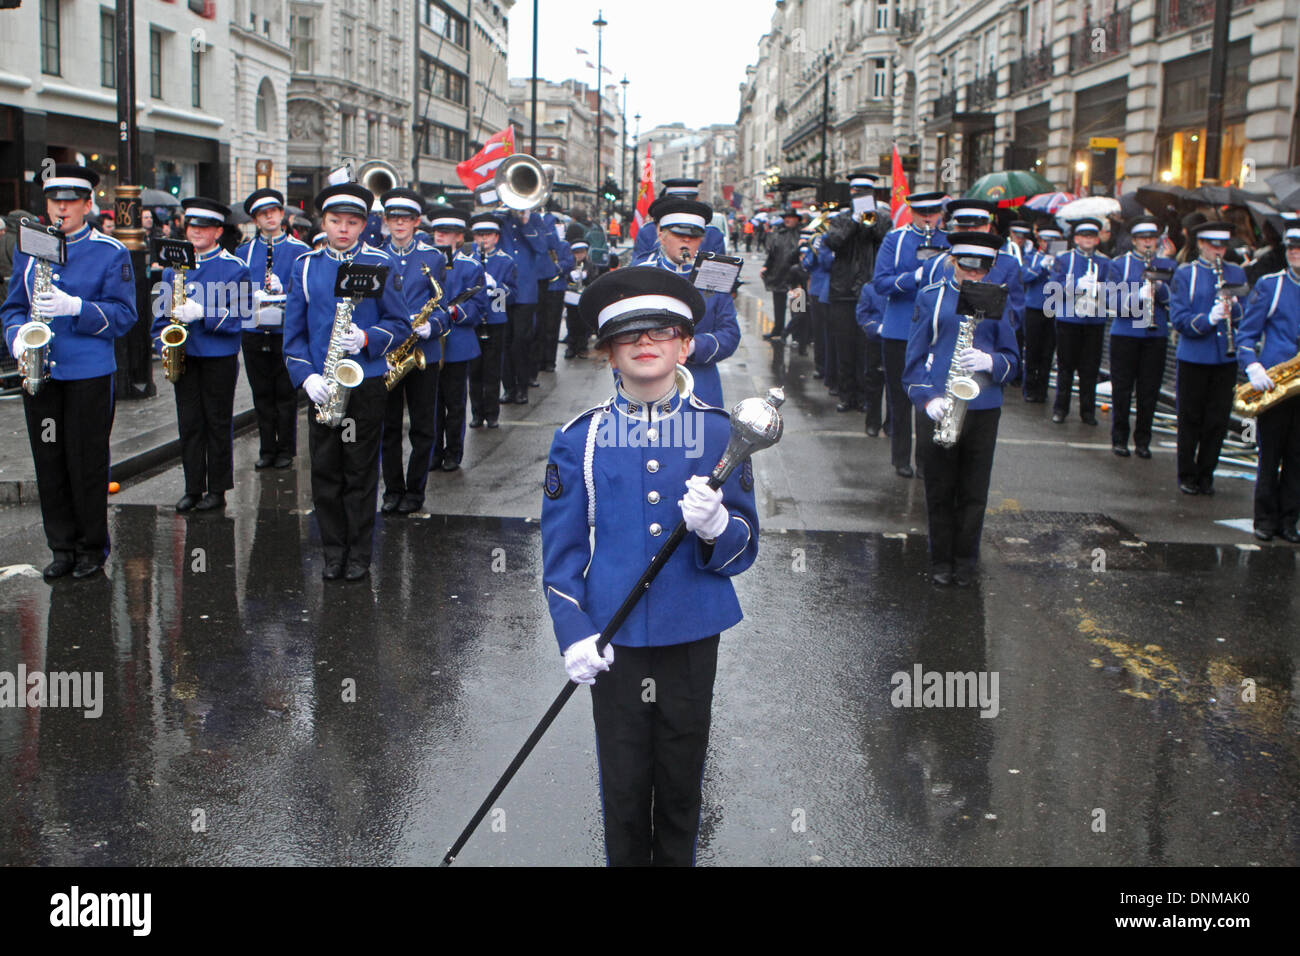 London,UK,1st January 2014,Essex marching Corps from Benfleet took part in the London's New Year's Day Parade 2014 Credit: Keith Larby/Alamy Live News - Stock Image